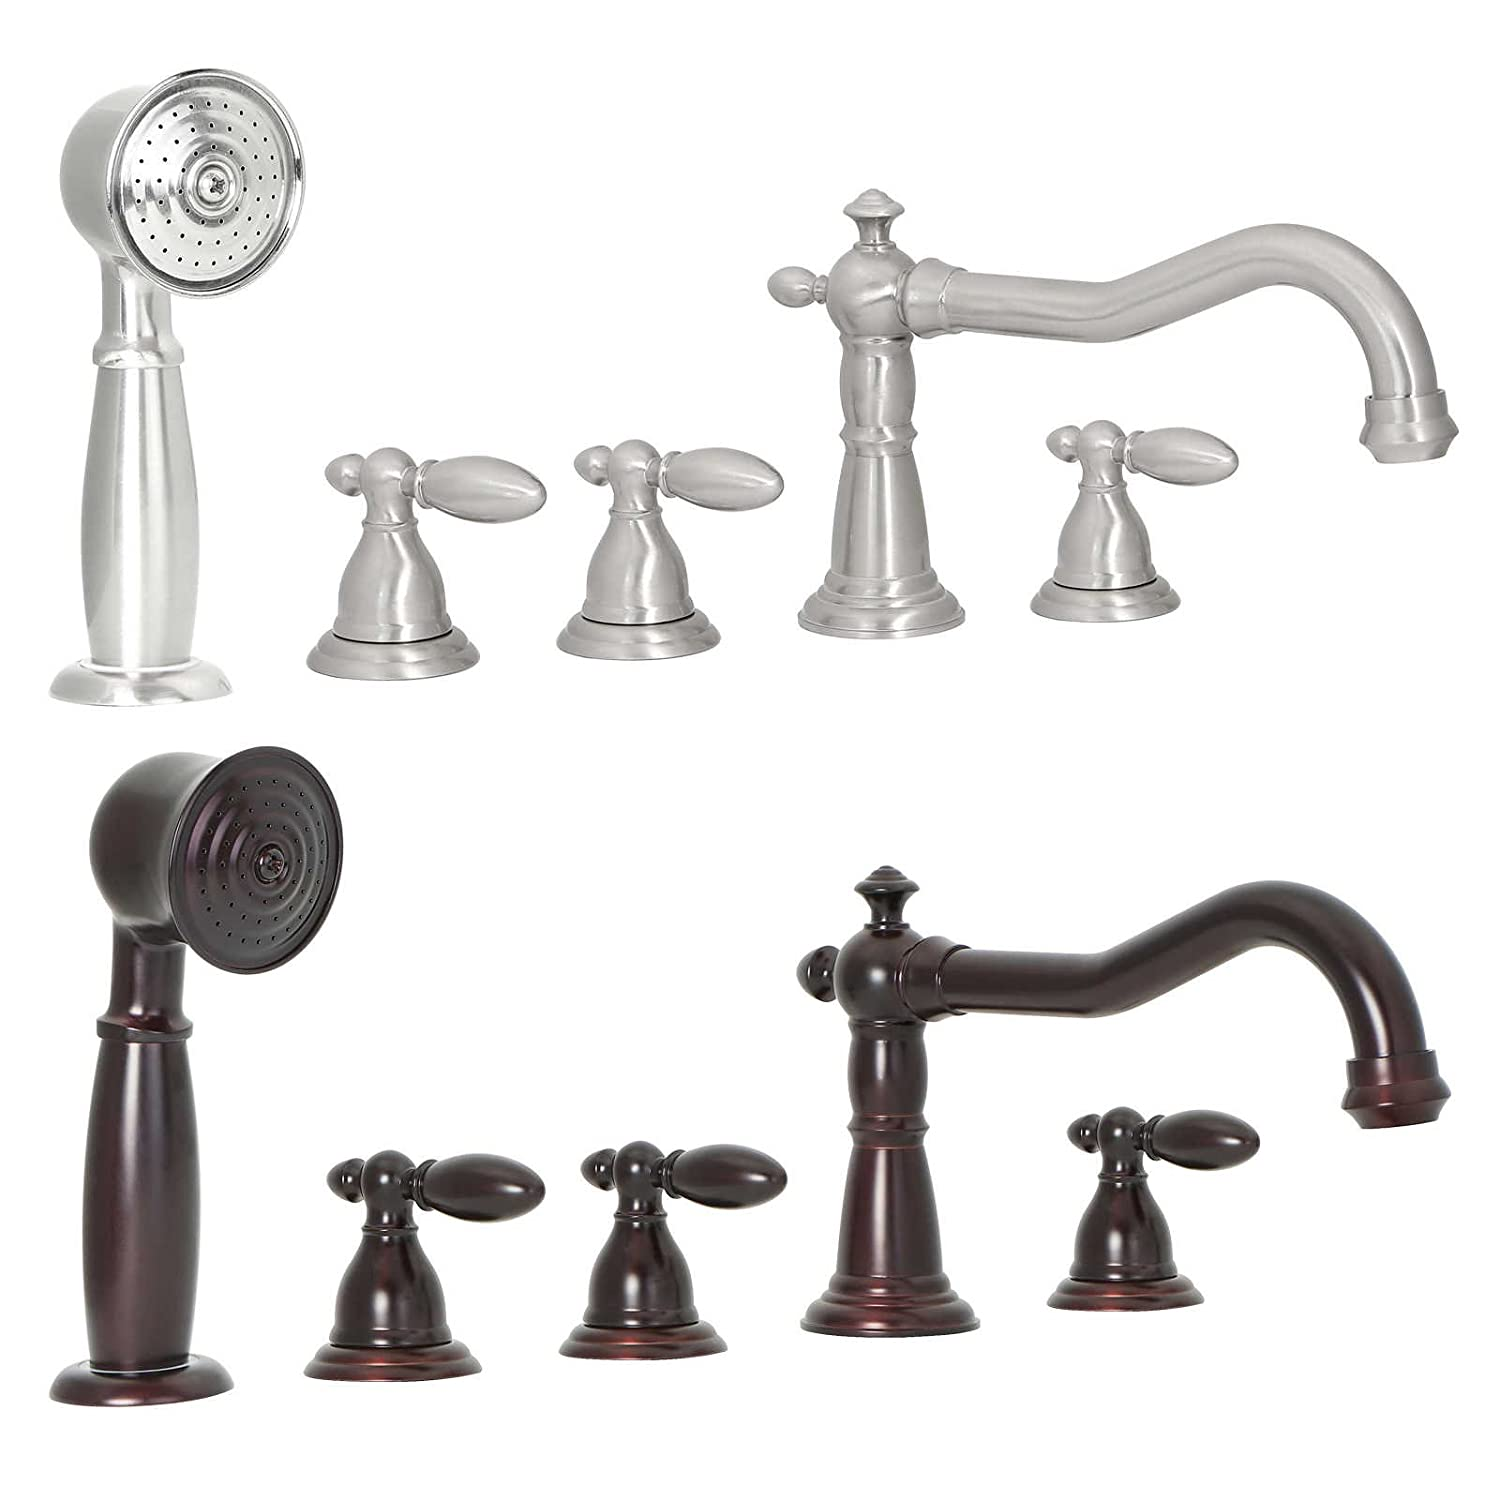 FREUER Bellissimo Collection: Handshower Roman Tub Faucet, Brushed ...